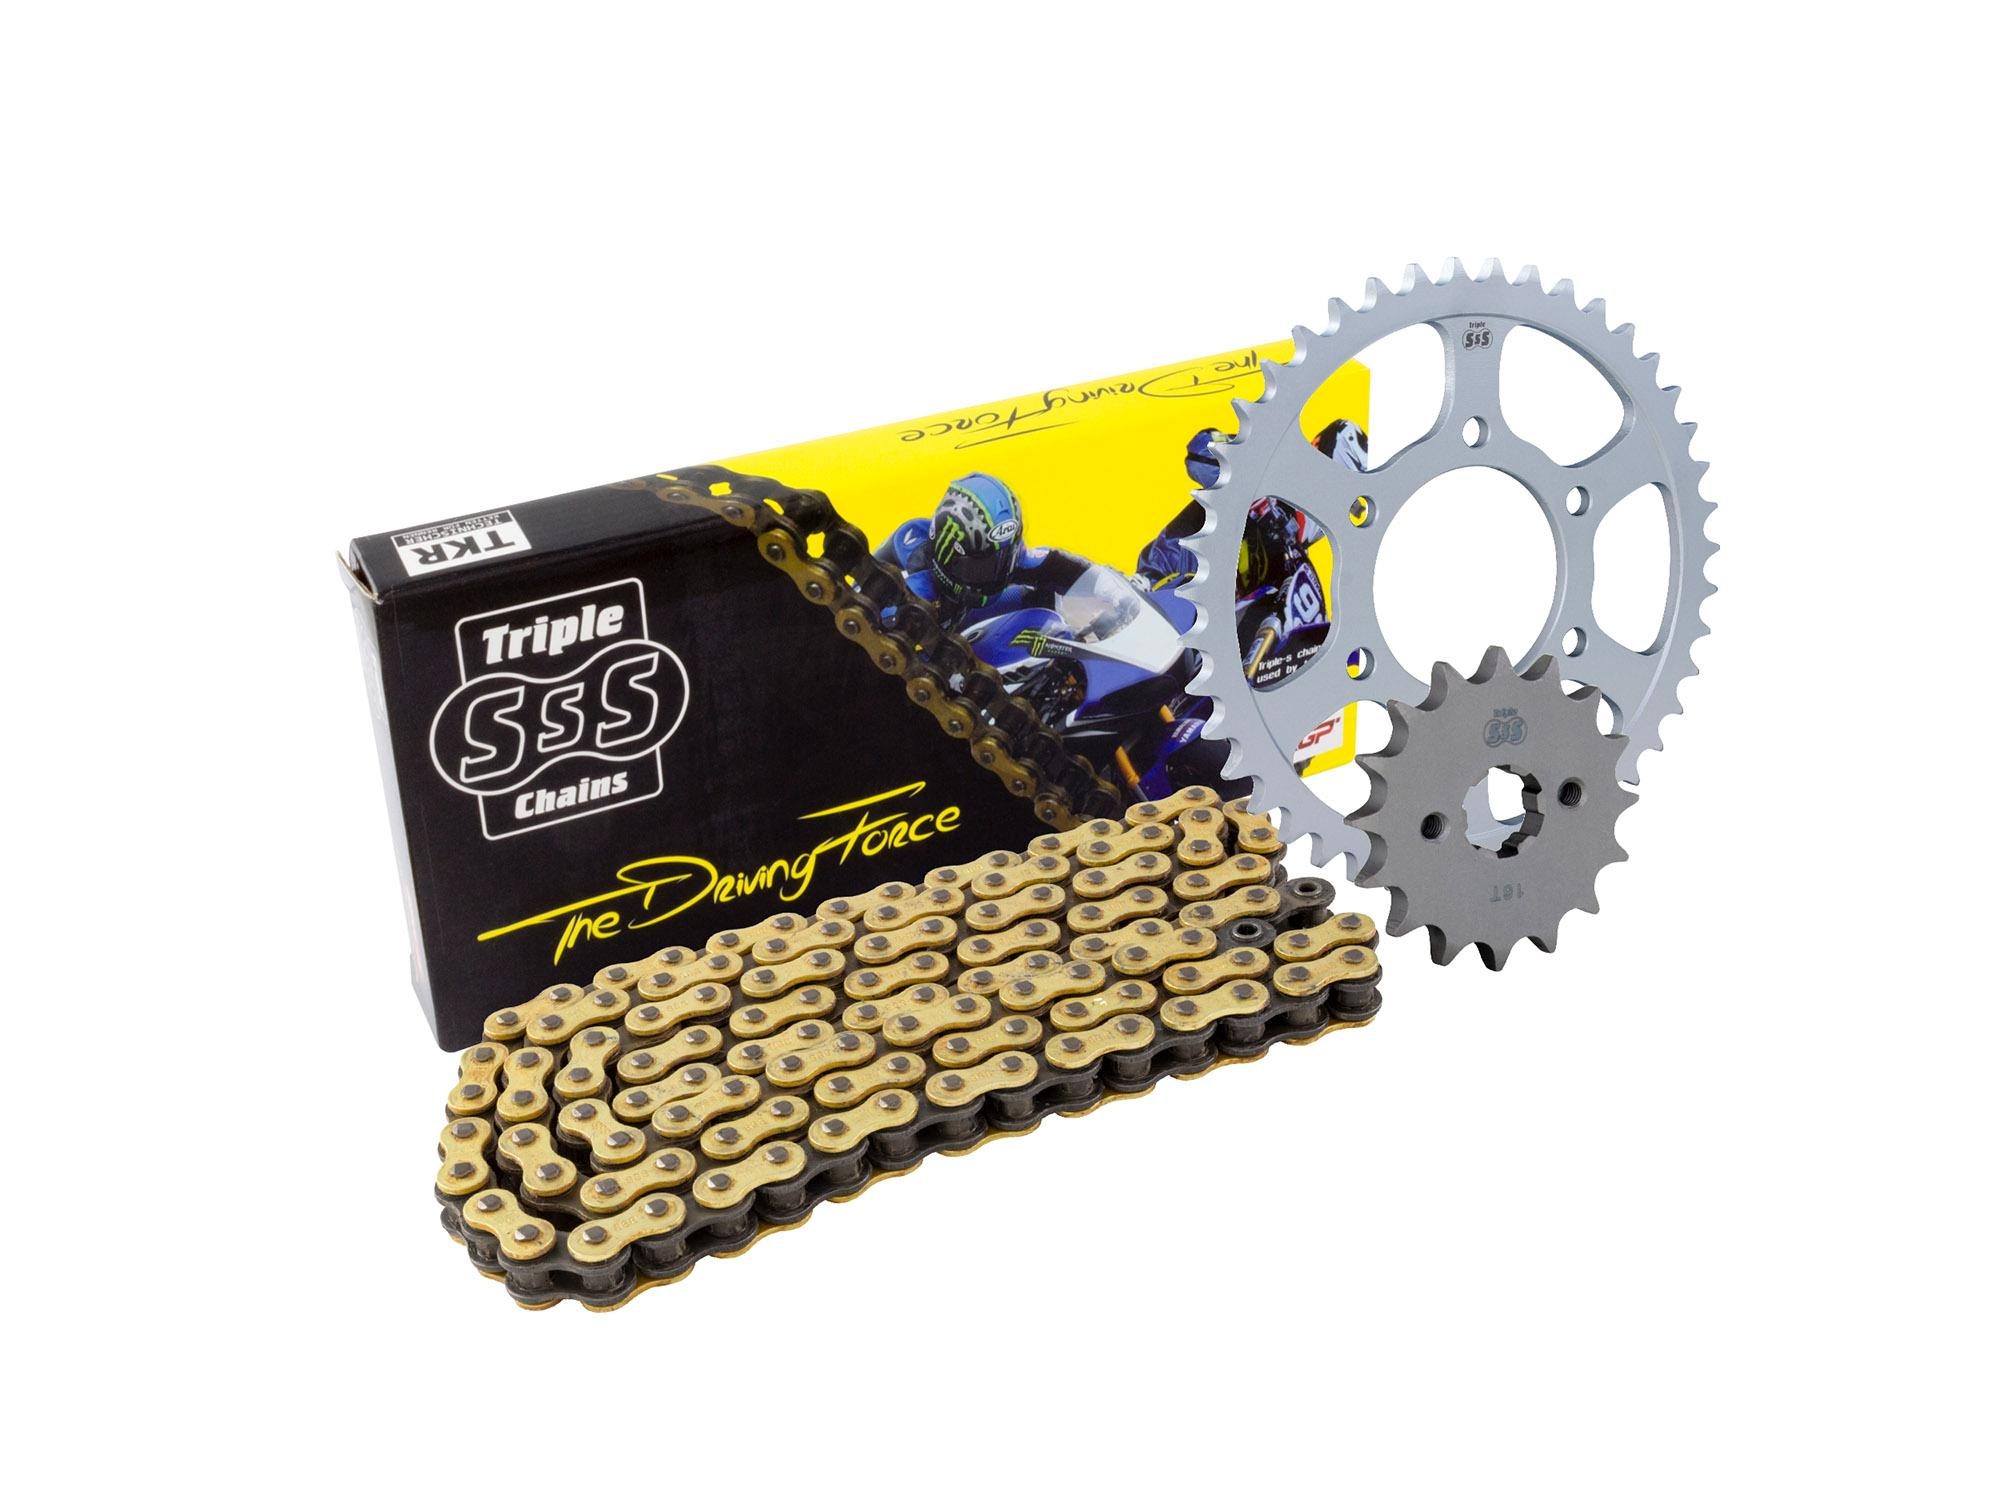 Aprilia 1000 RSV Mille R 04-08 Chain & Sprocket Kit: 16T Front, 40T Rear, HD O-Ring Gold Chain 525H 106Link